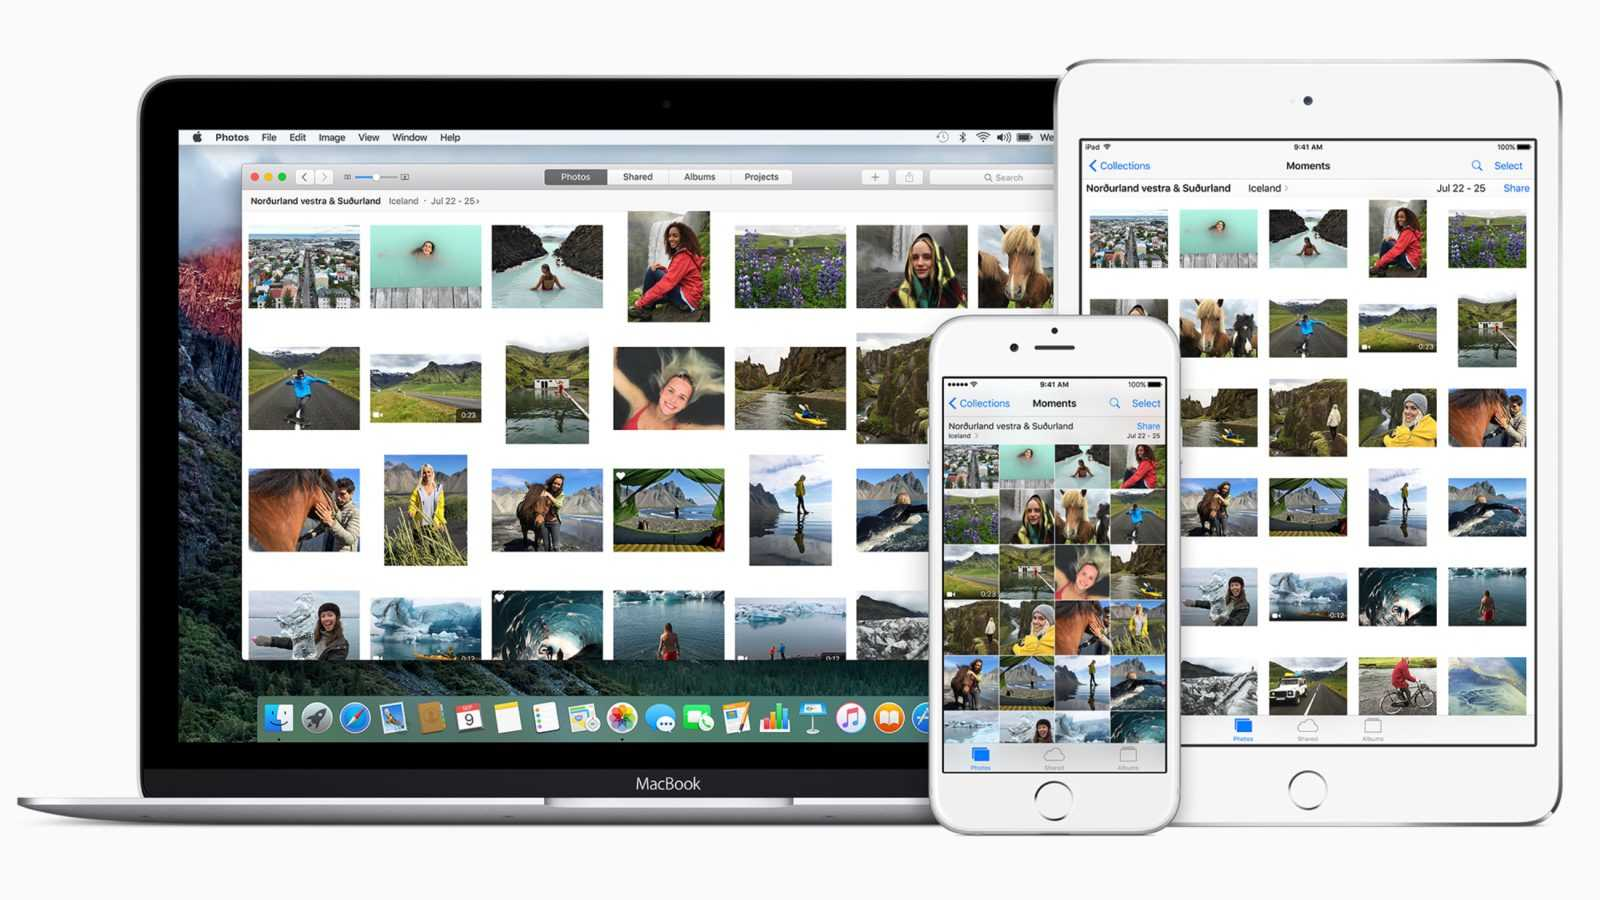 How to throw photos from iPhone to computer